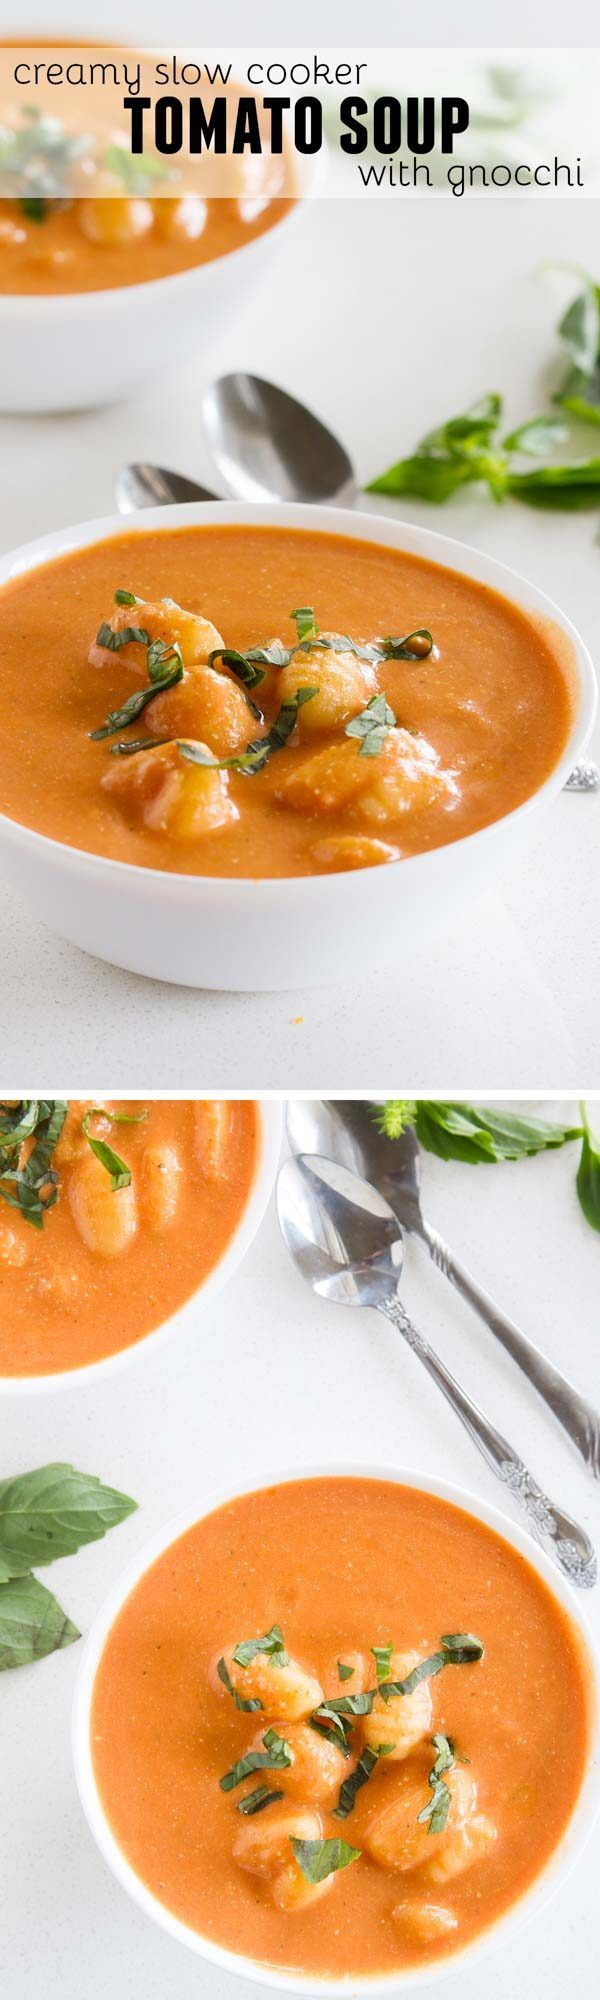 This Creamy Slow Cooker Tomato Soup only takes minutes to prepare and is perfect for a cold night. Keep this recipe on hand for busy nights when you only have a few minutes to prep dinner.